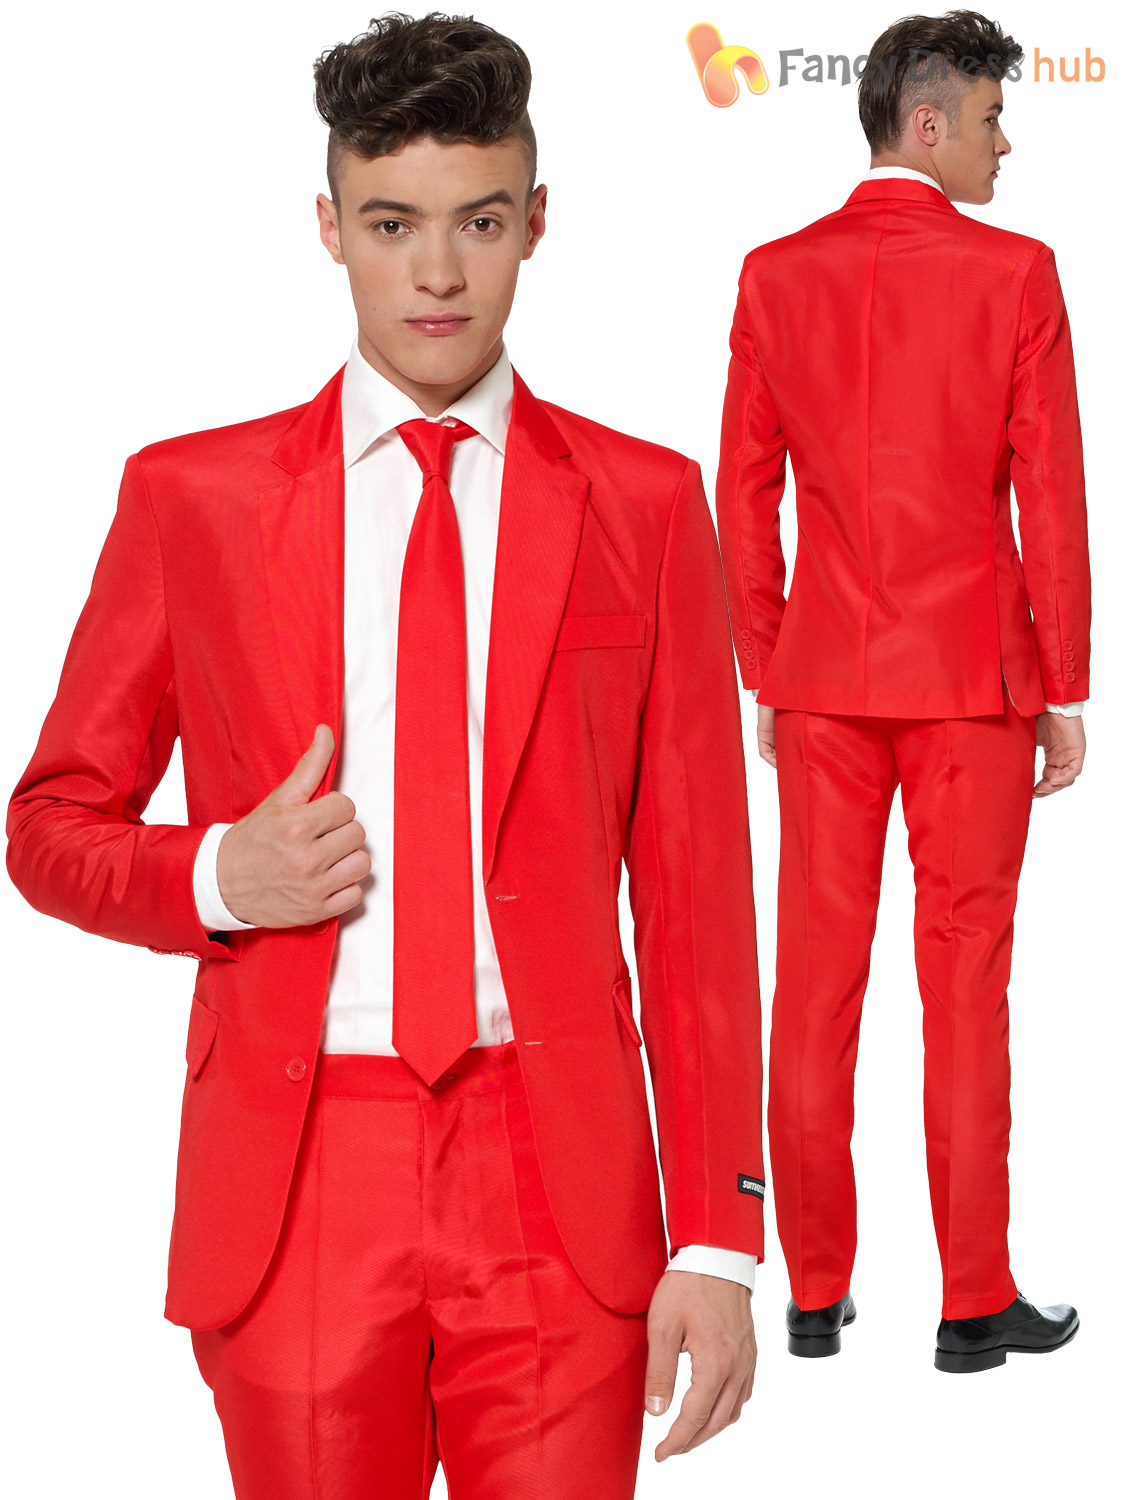 For a stand-out kind of guy, a sharp novelty suit is the perfect fit—but these suits are anything but a joke. They are undeniably outrageous, but also decidedly well-made, just like a traditional suit. Each suit is three pieces—a slim-fitting and lined jacket, pants, and a matching tie—full of.